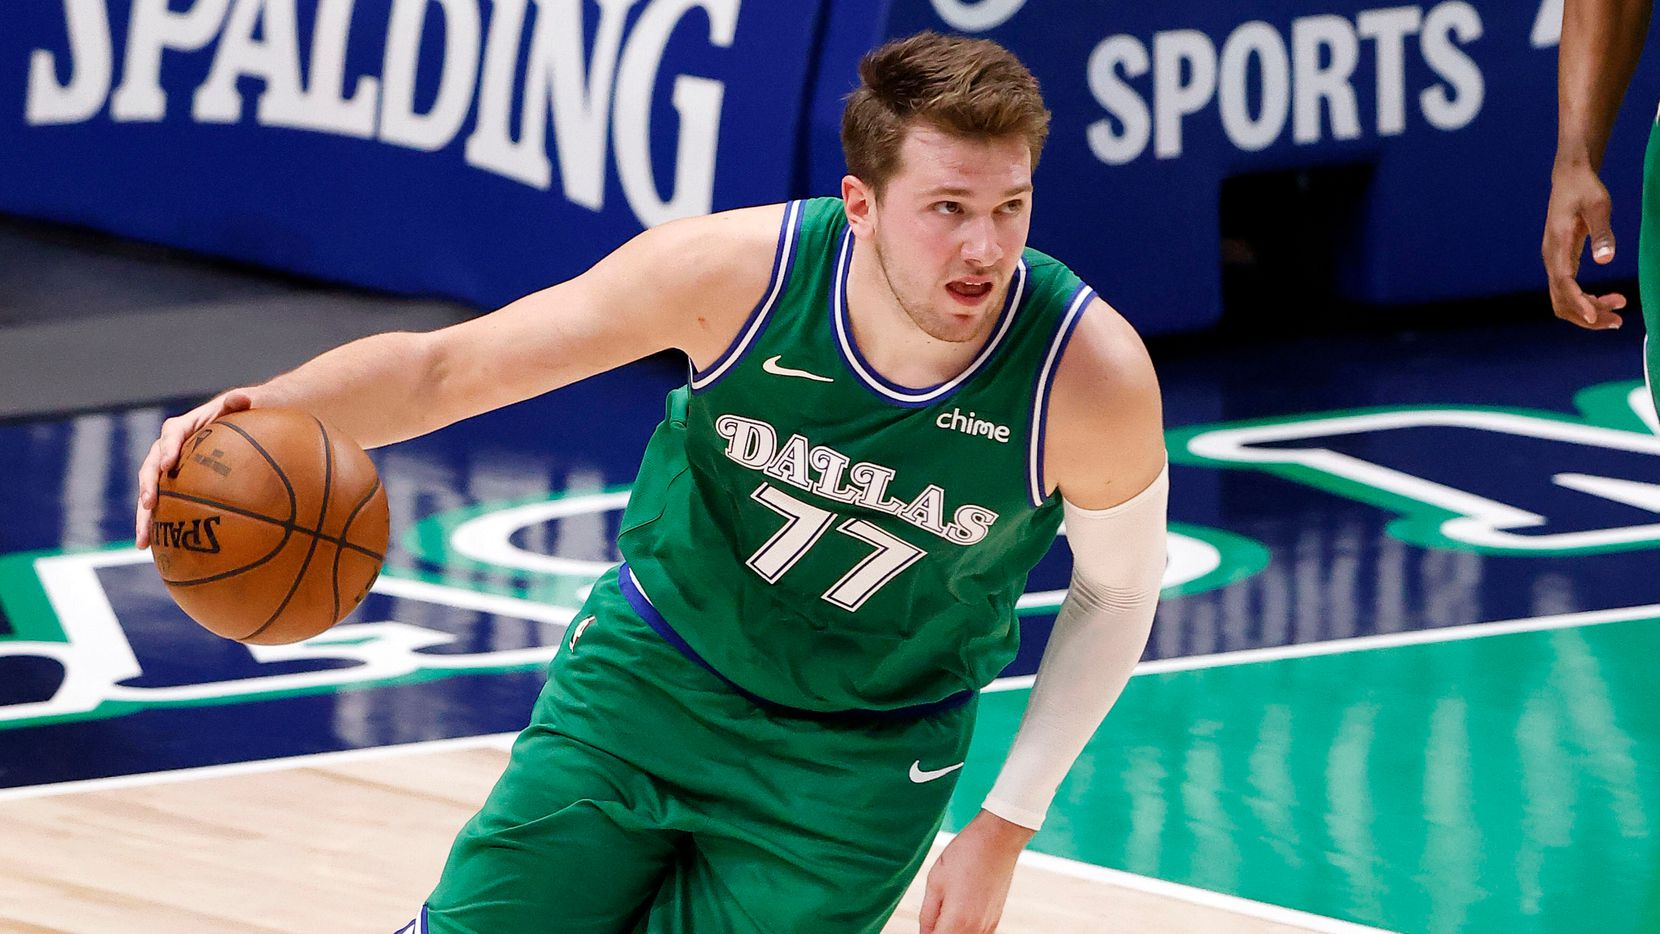 Dallas Mavericks guard Luka Doncic (77) grabs a rebound against the Milwaukee Bucks in the second quarter at the American Airlines Center in Dallas, Thursday, April 8, 2021. (Tom Fox/The Dallas Morning News)